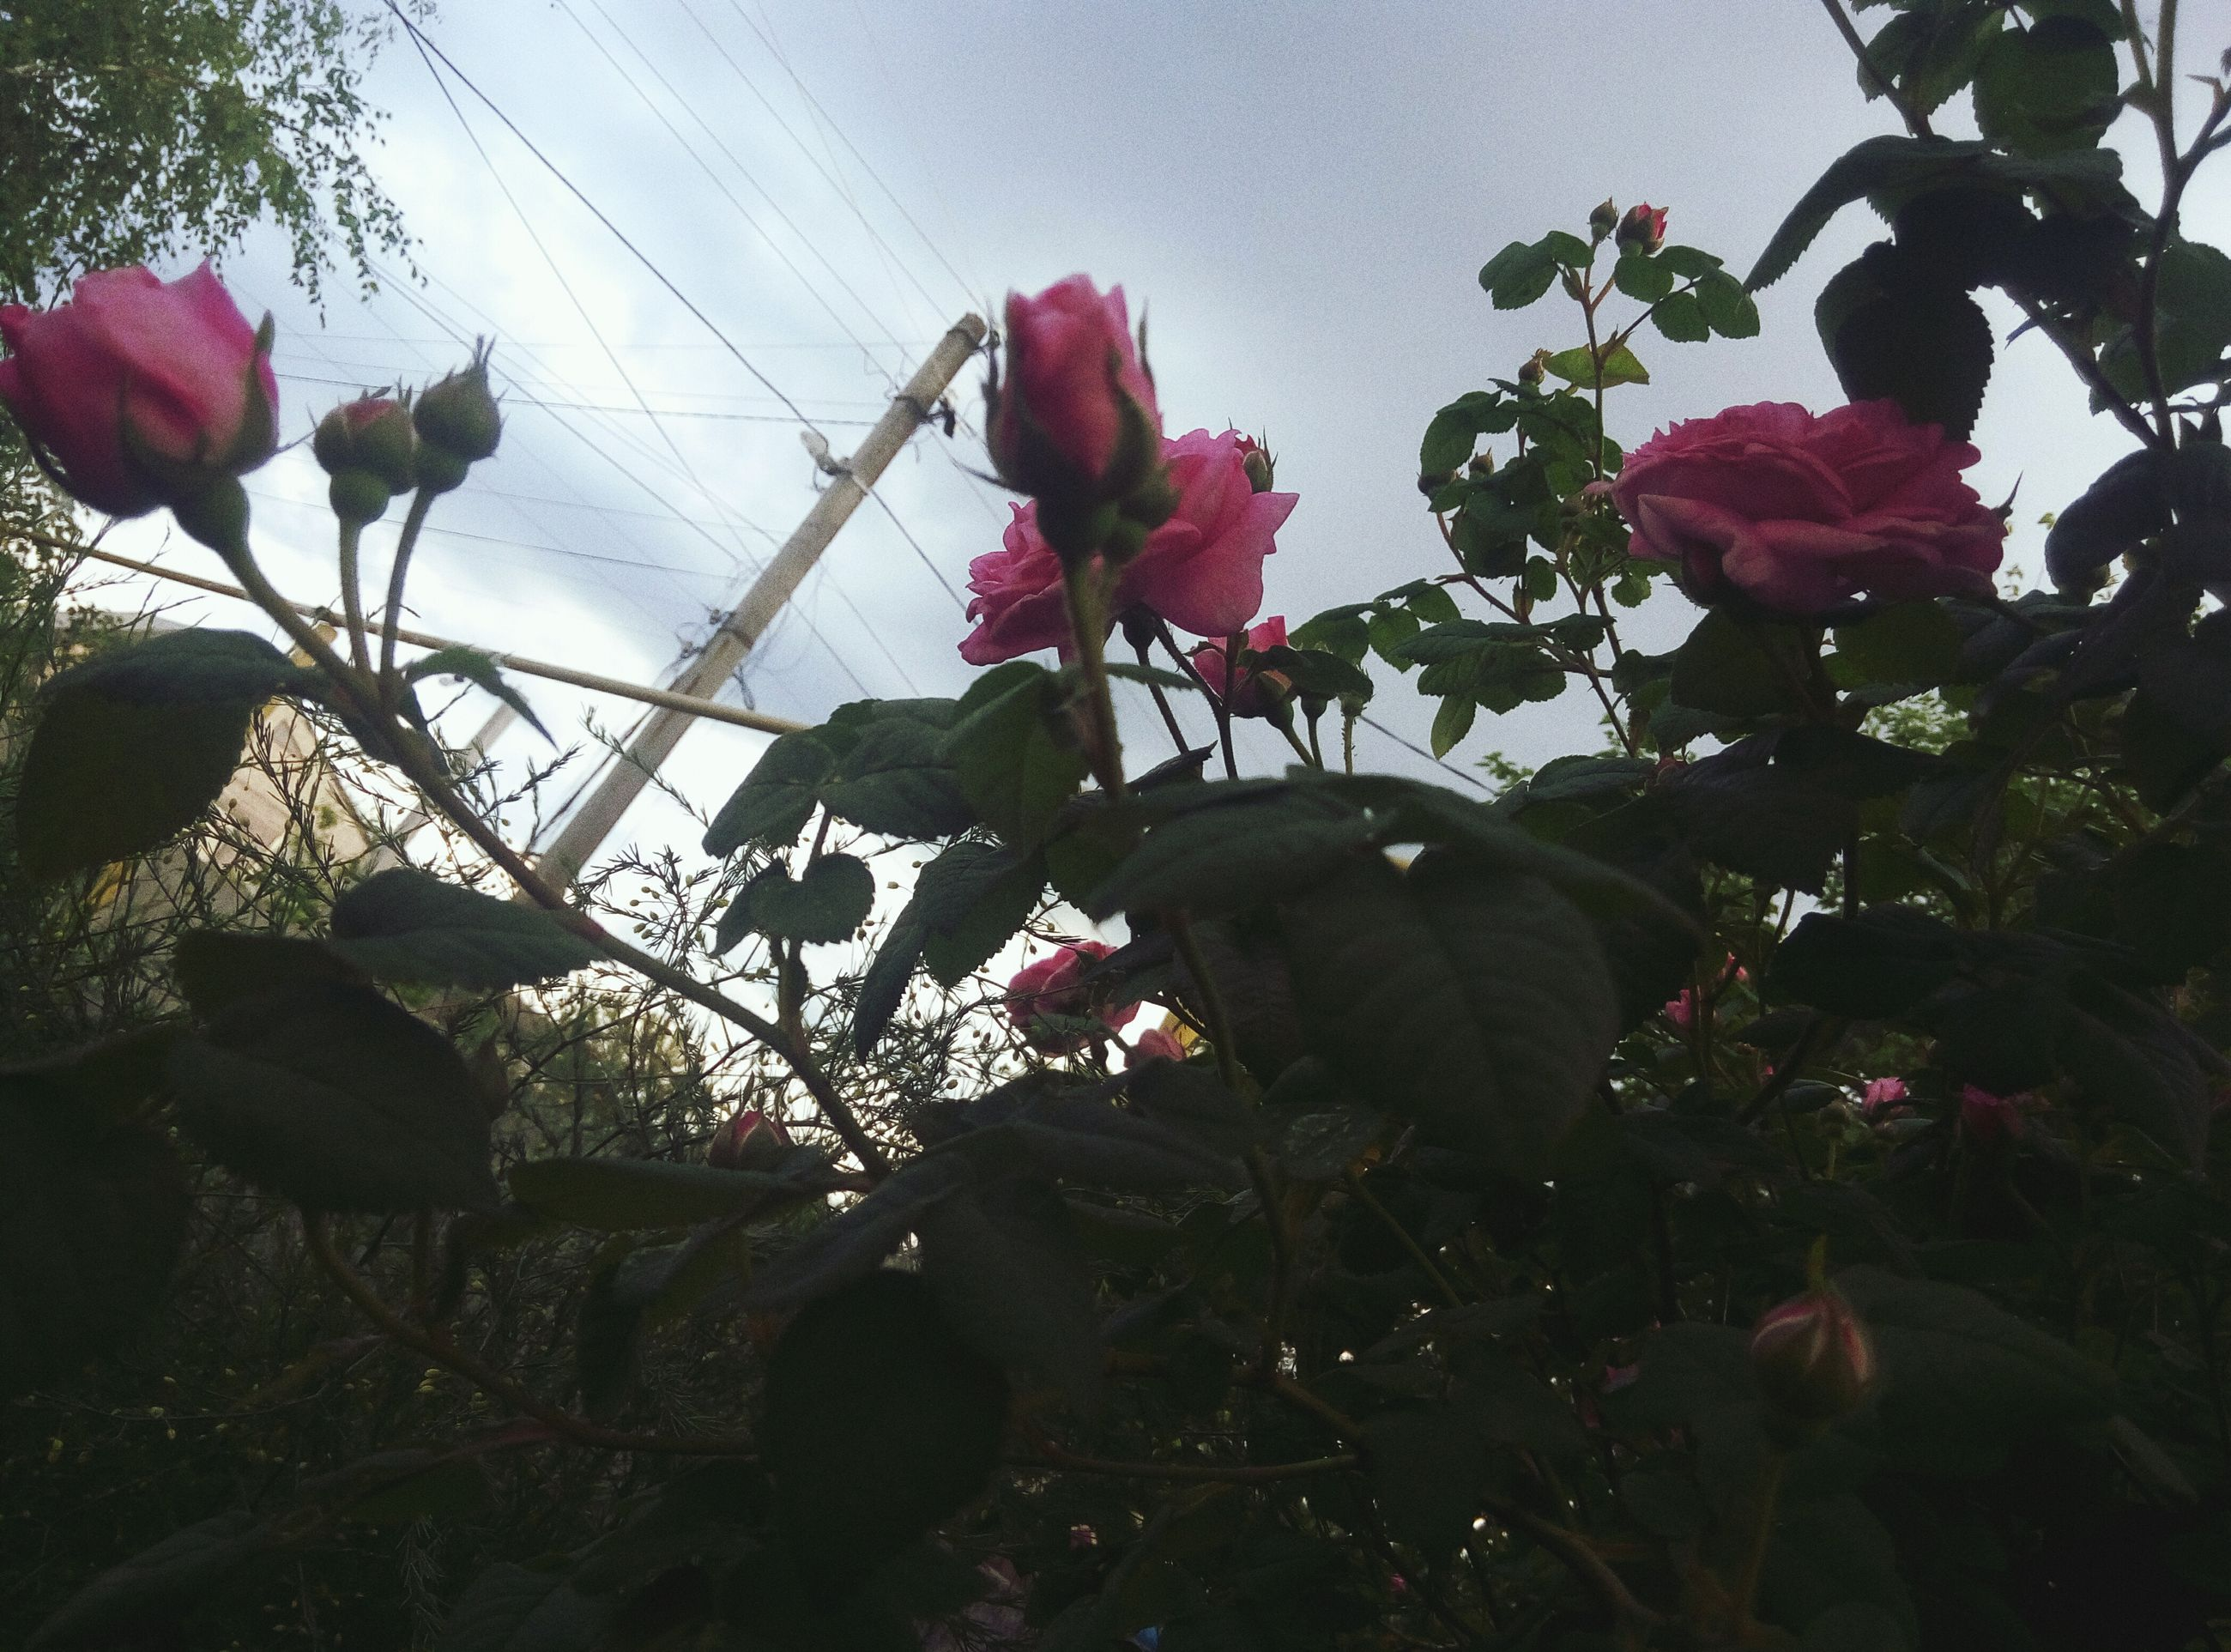 flower, low angle view, plant, nature, growth, fragility, petal, sky, outdoors, beauty in nature, no people, day, freshness, leaf, flower head, tree, blooming, close-up